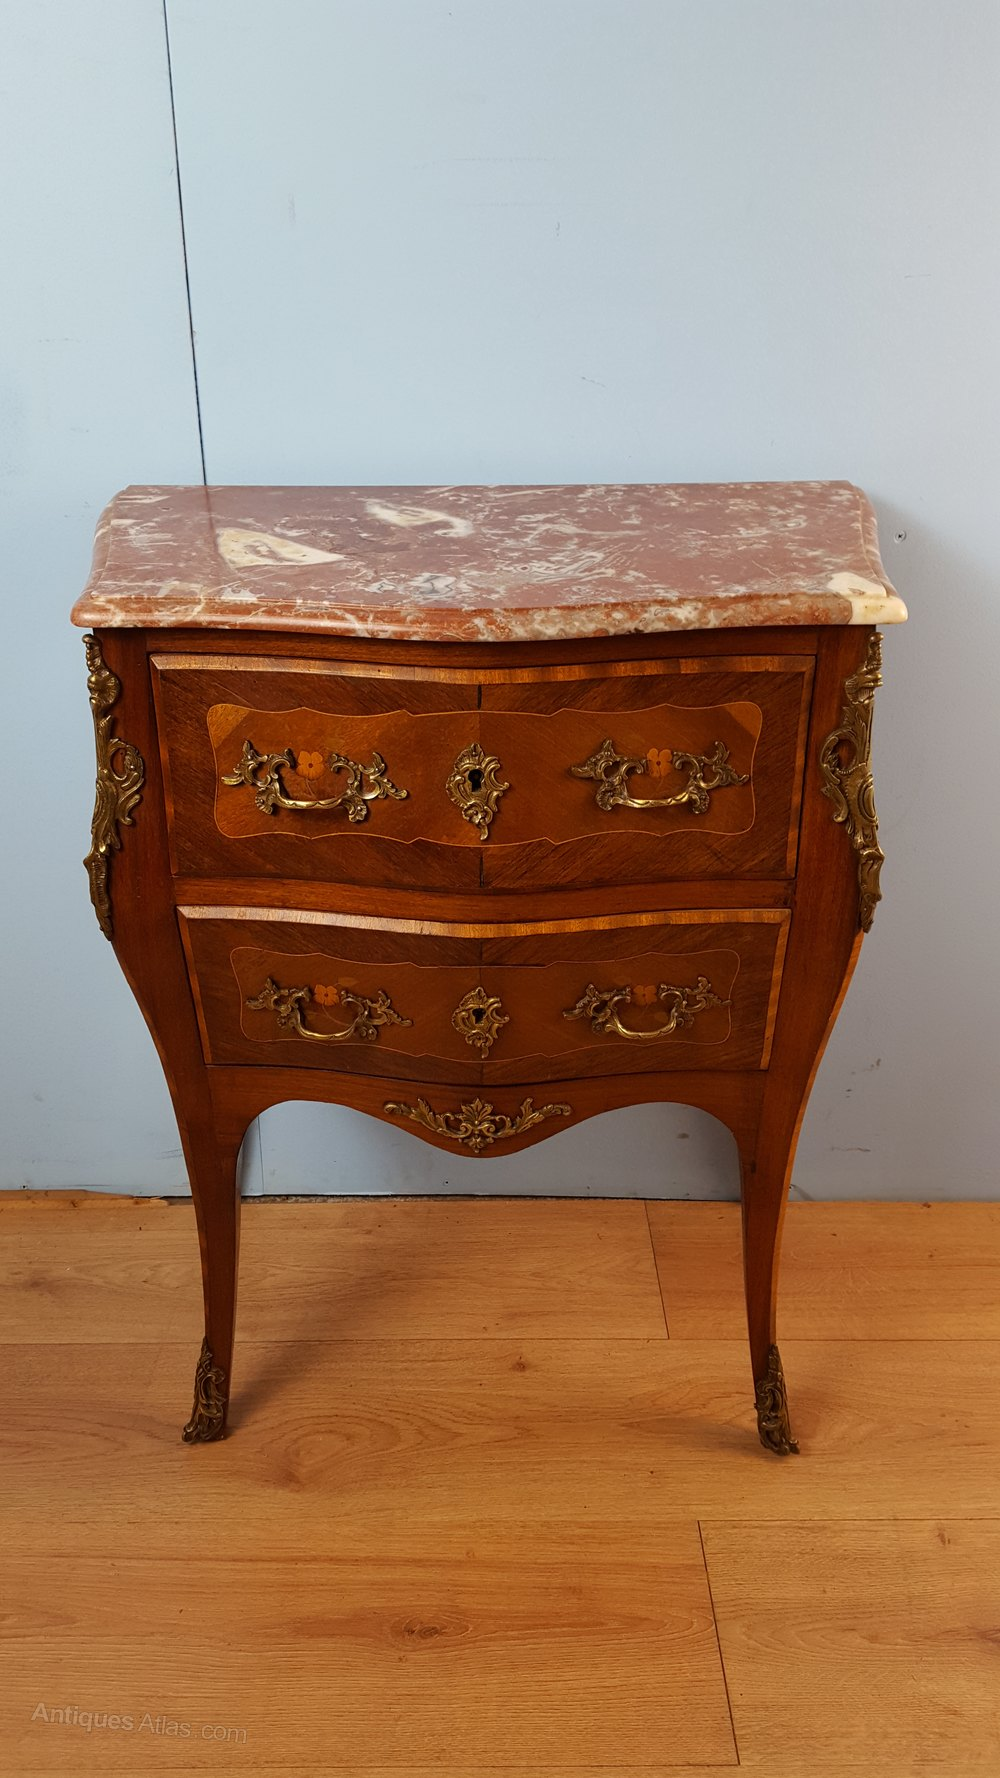 Louis xv marble top commode antiques atlas - Commode vintage ninedesign ...